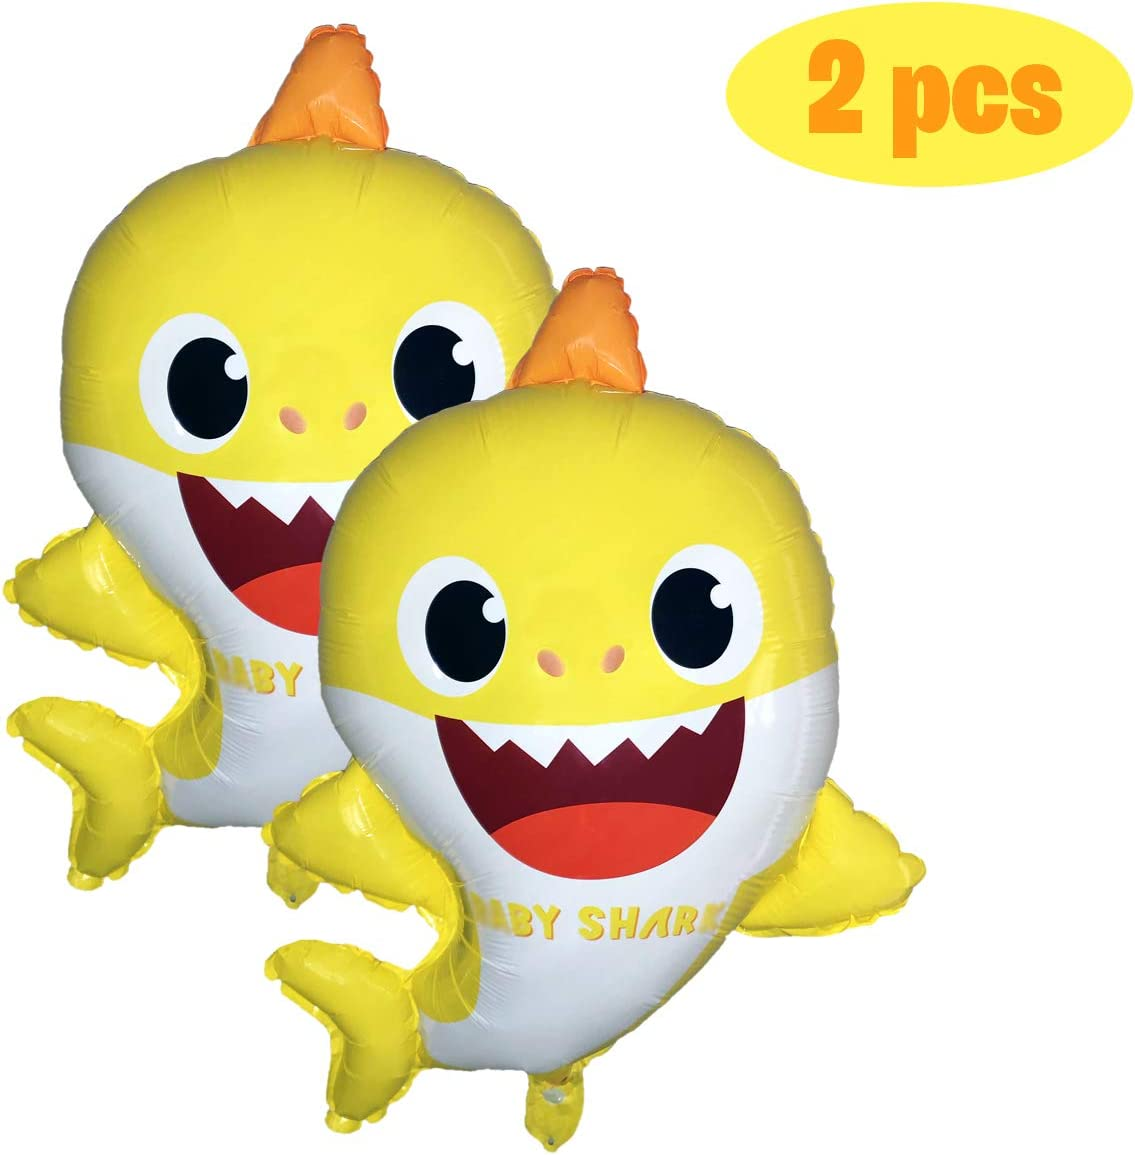 """Party Hive Large 22"""" Baby Cute Shark Helium Balloon for Kids Birthday Party Event Decoration (2 Pack)"""